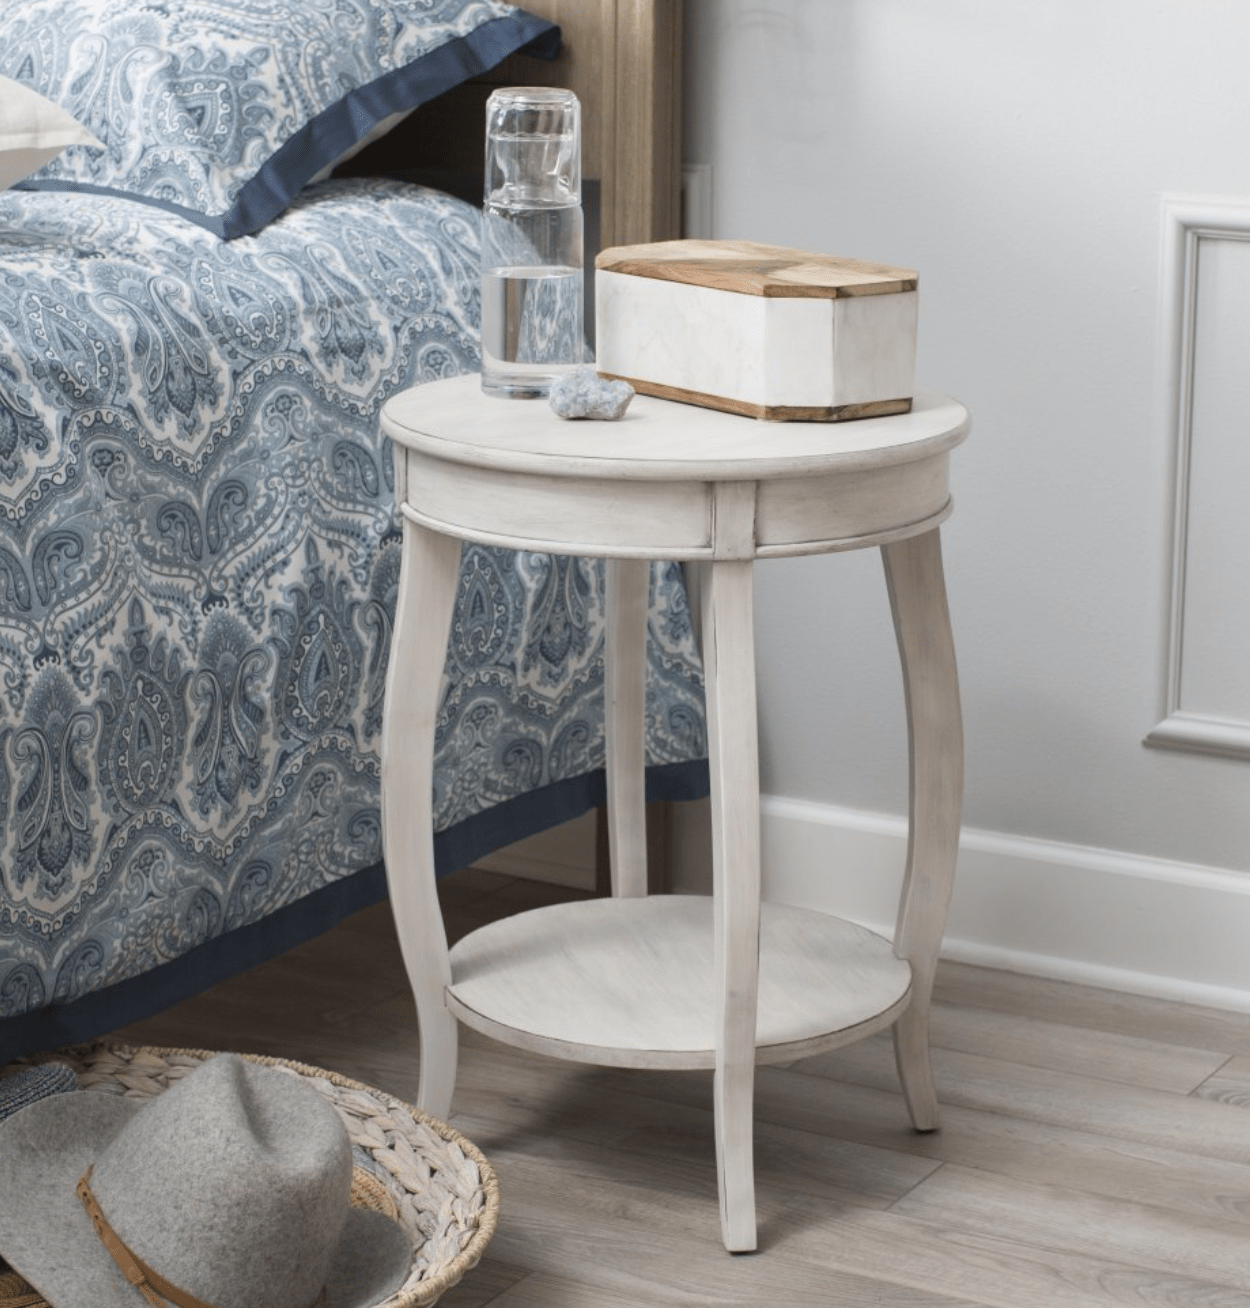 lovely small accent table for white round bedroom min rustic compact with lower and upper shelf battery operated decorative lamps mirrored couch big bedside rubber carpet edging